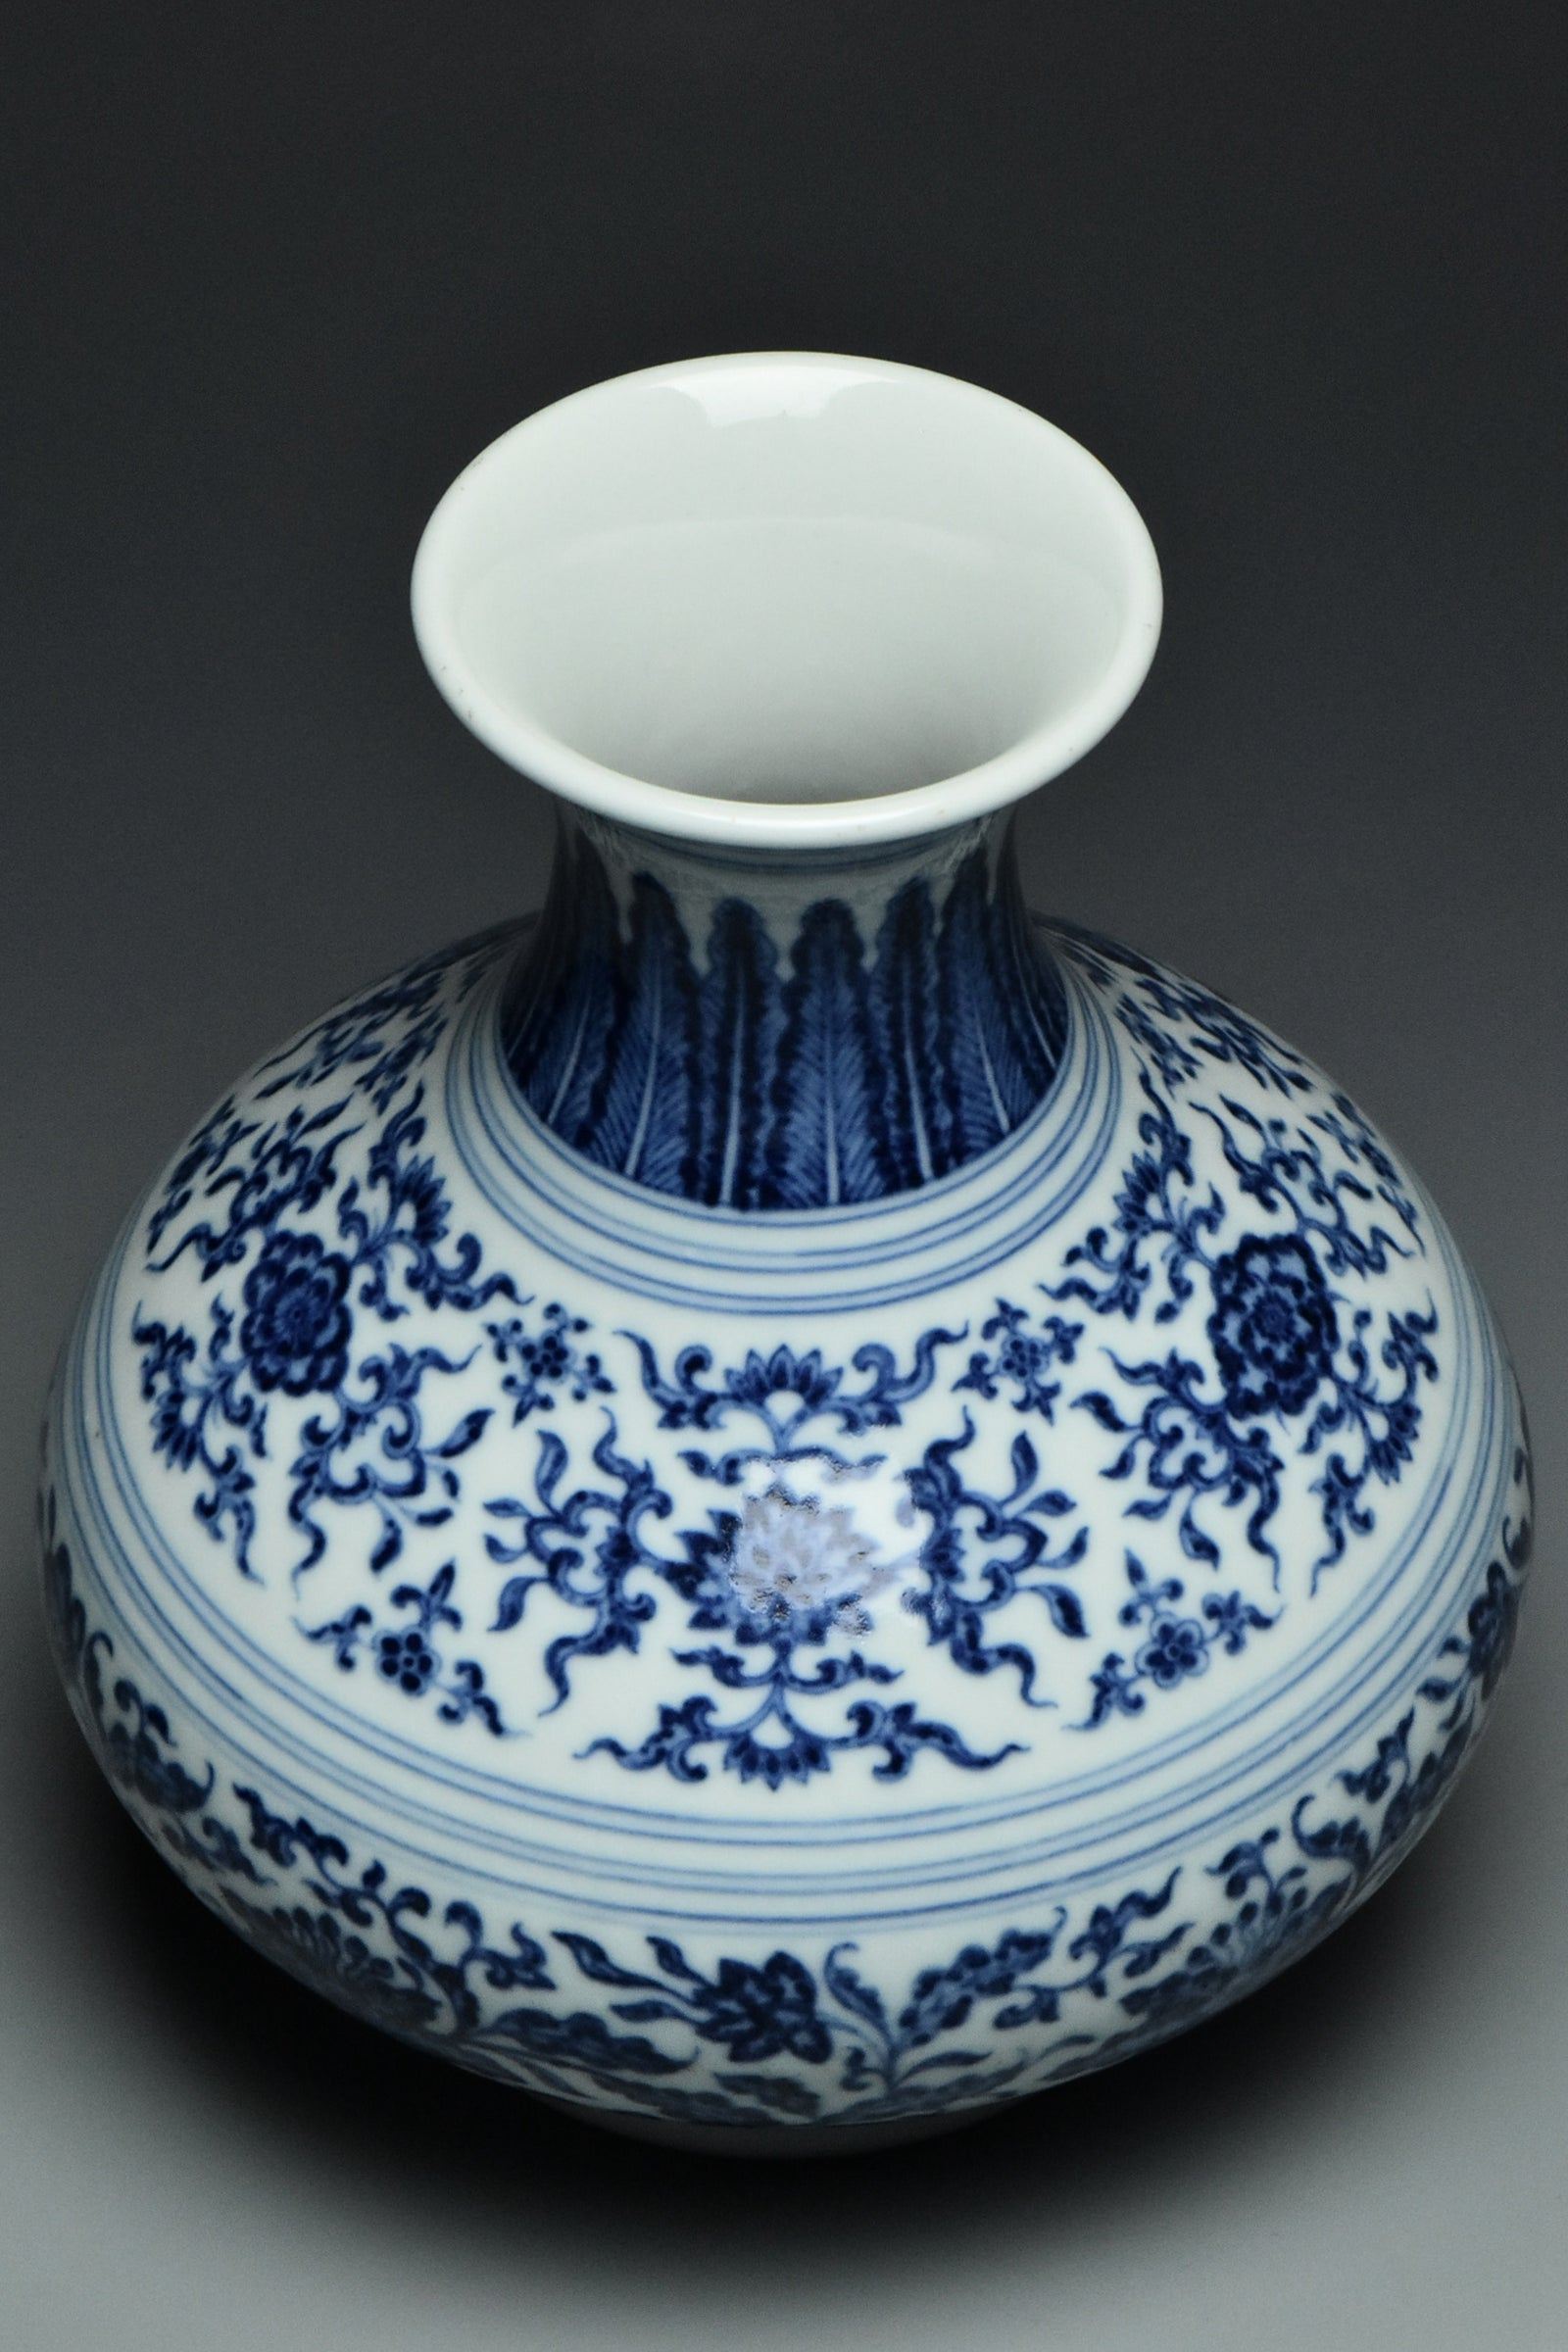 001: A BLUE AND WHITE VASE YONGZHENG MARK AND PERIOD